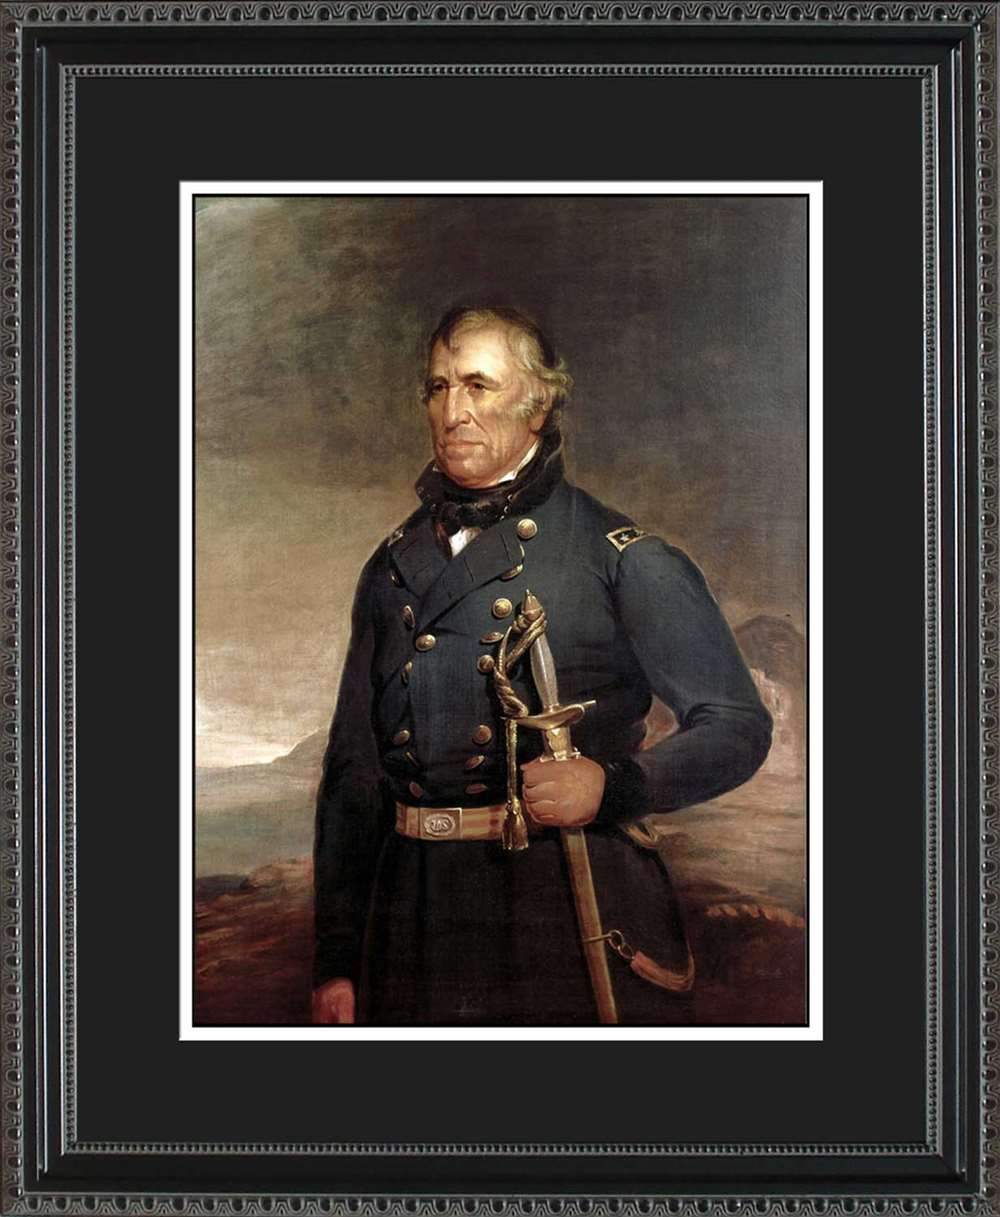 Zachary Taylor Official President Portrait, 16x20